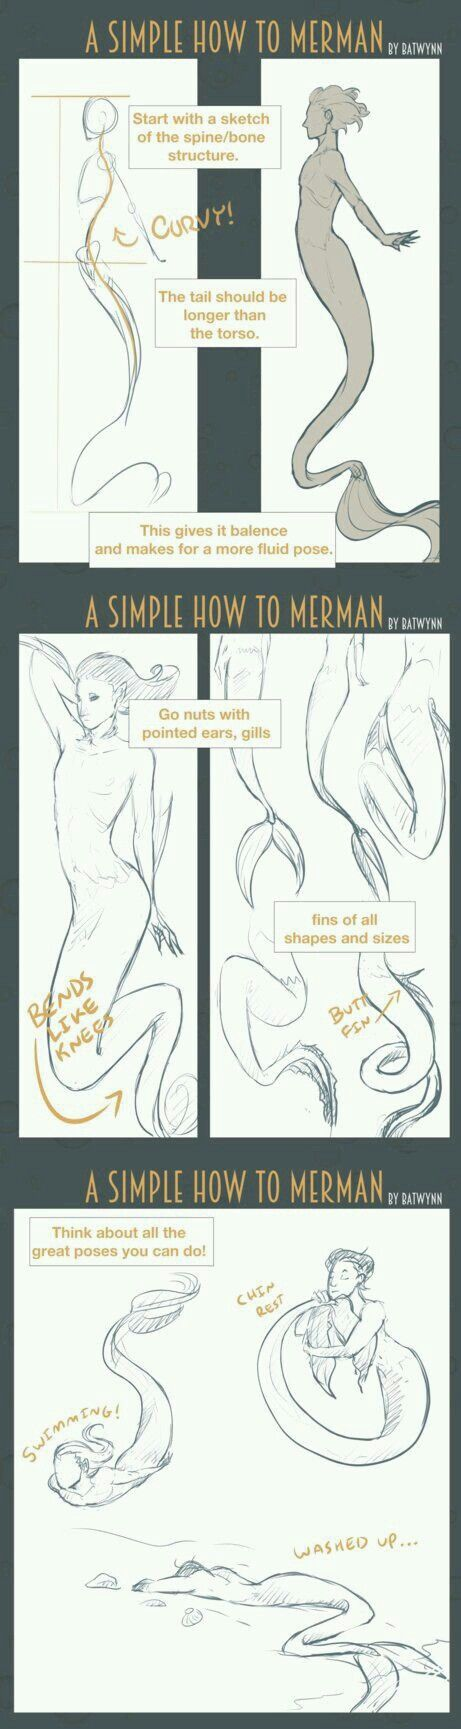 A simple how to draw a mermaid